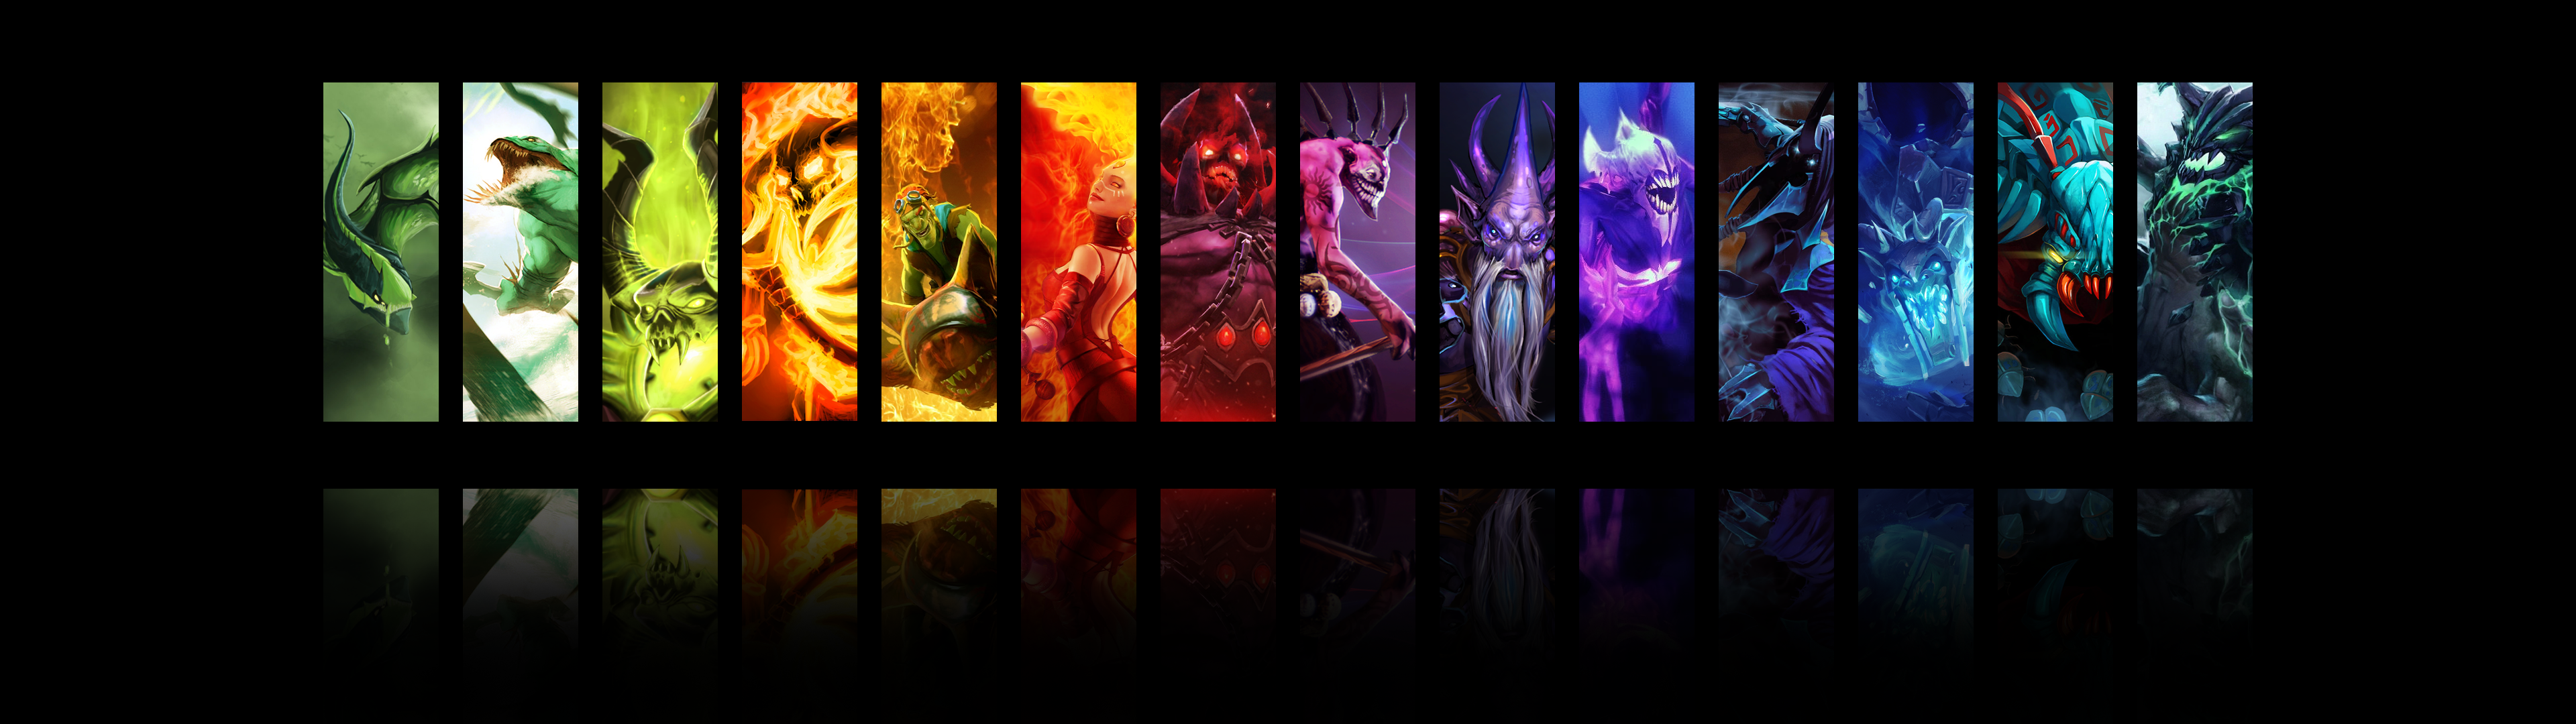 DotA 2 Hero Wallpaper I threw together [1920x1080] DotA2 3840x1080